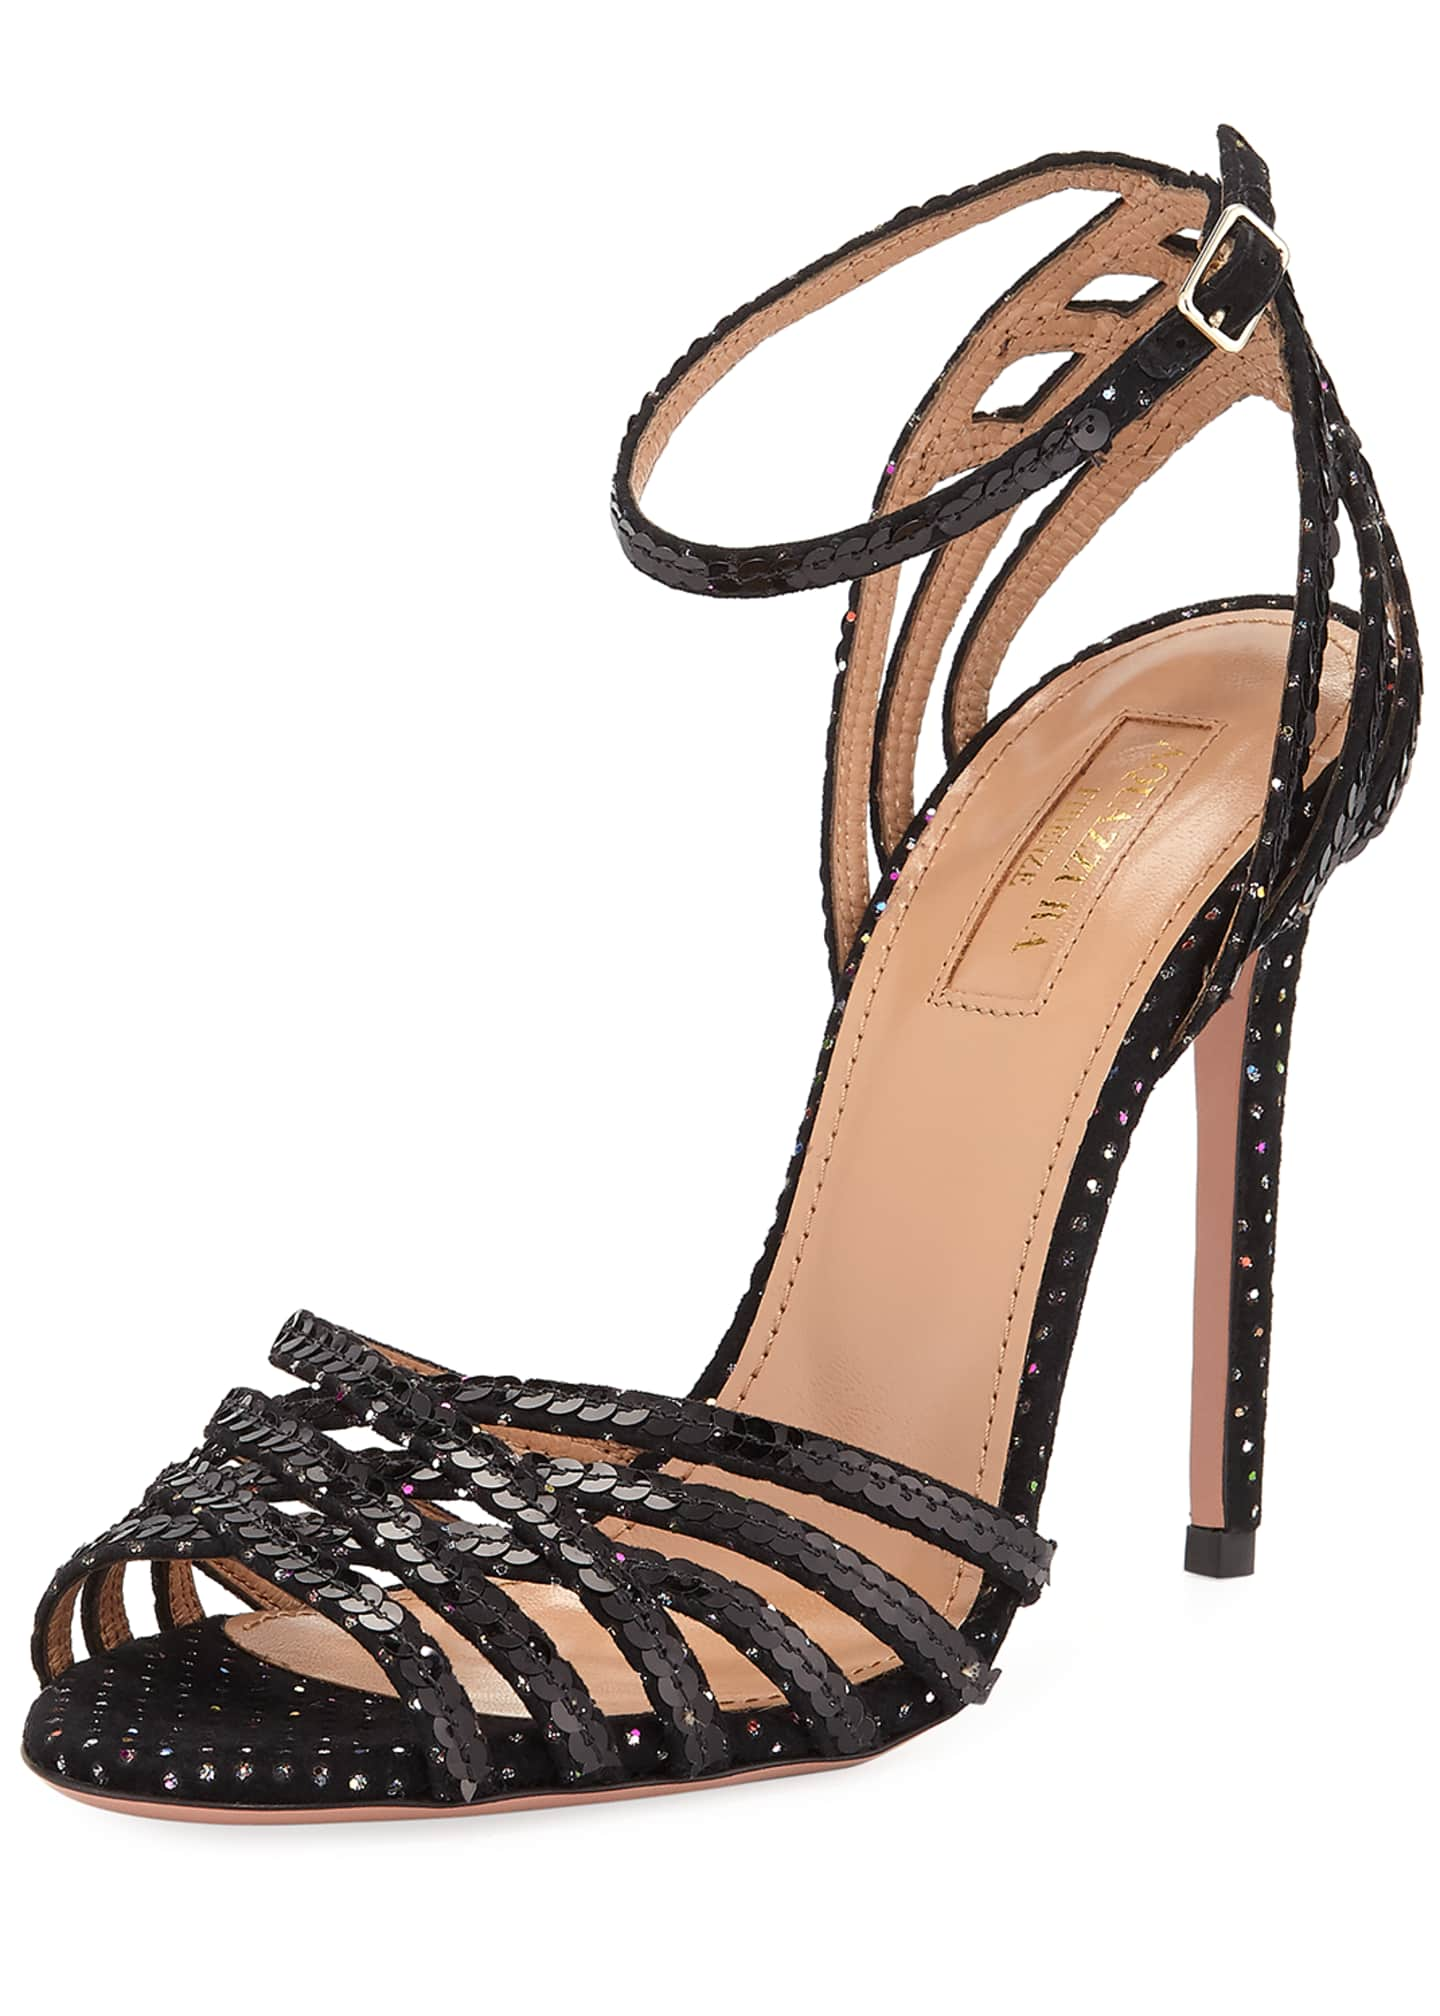 Aquazzura Studio Sequin Sandals with Ankle Strap Velvet